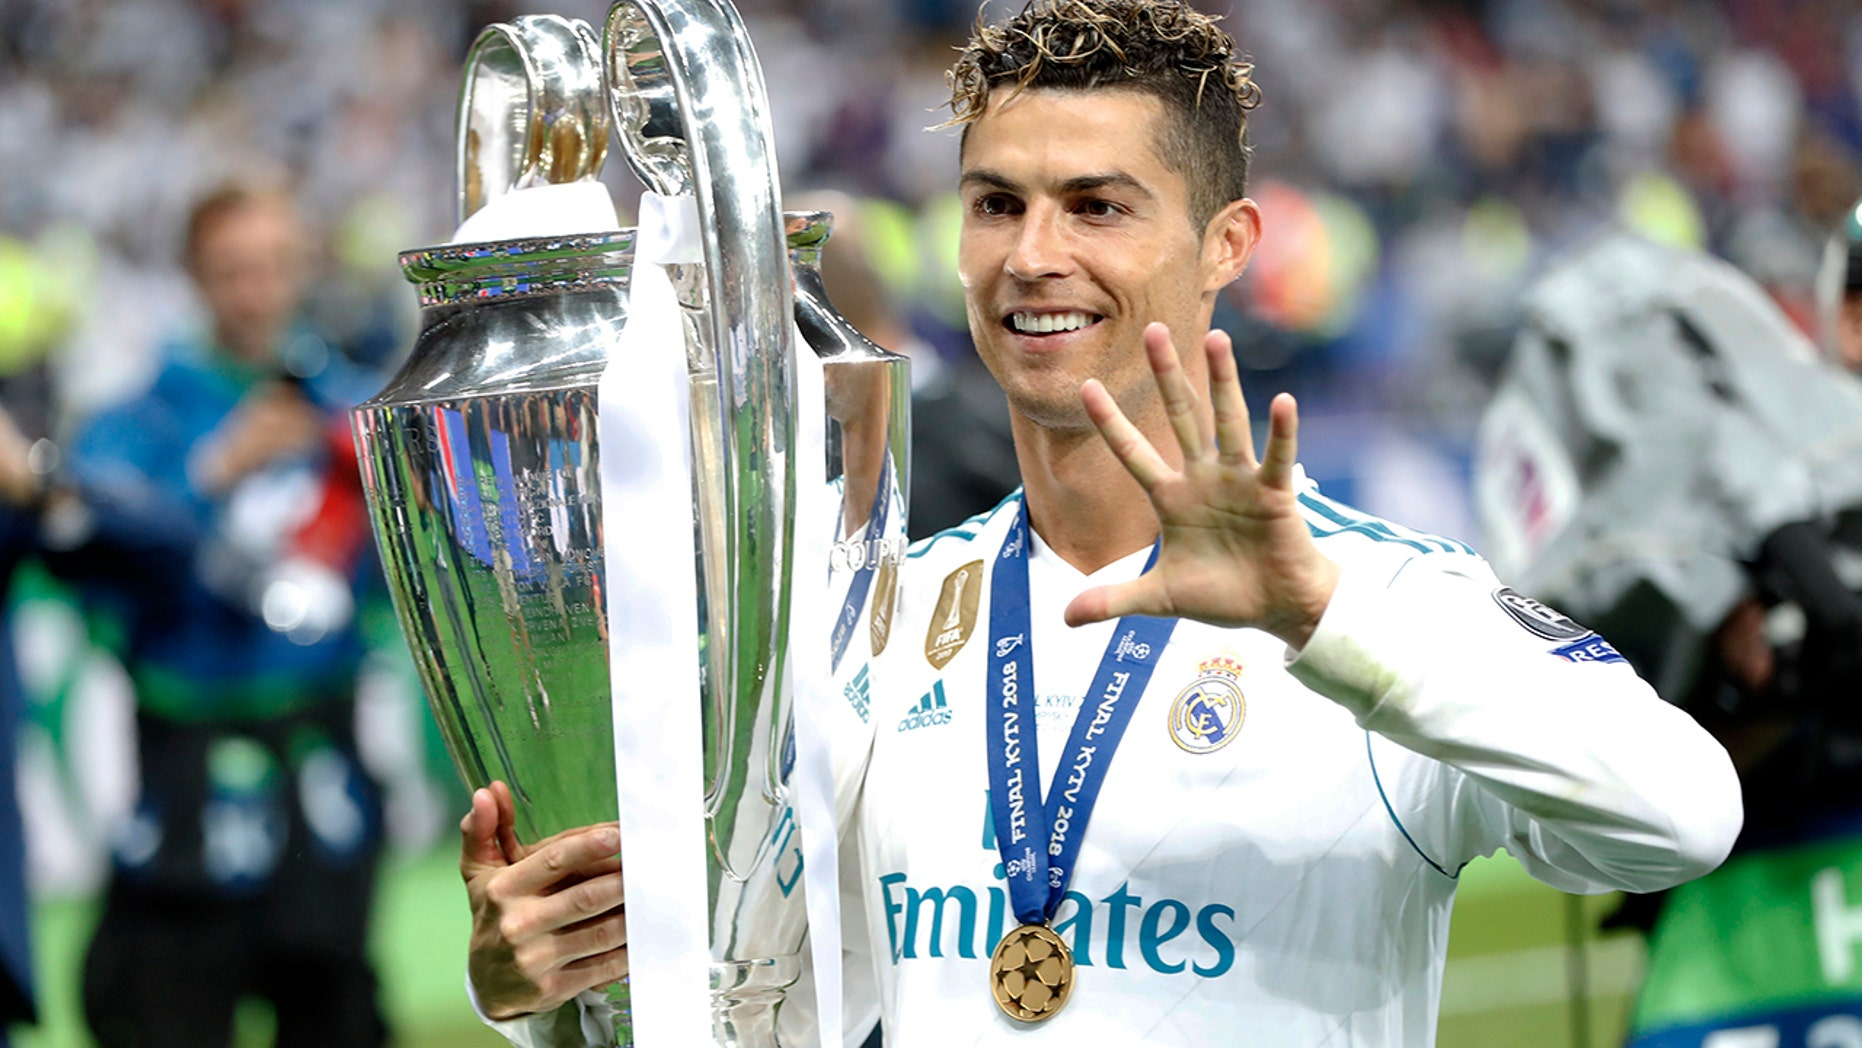 Real Madrid's Cristiano Ronaldo celebrates with the trophy after winning the Champions League Final soccer match between Real Madrid and Liverpool at the Olimpiyskiy Stadium in Kiev, Ukraine, May 26, 2018